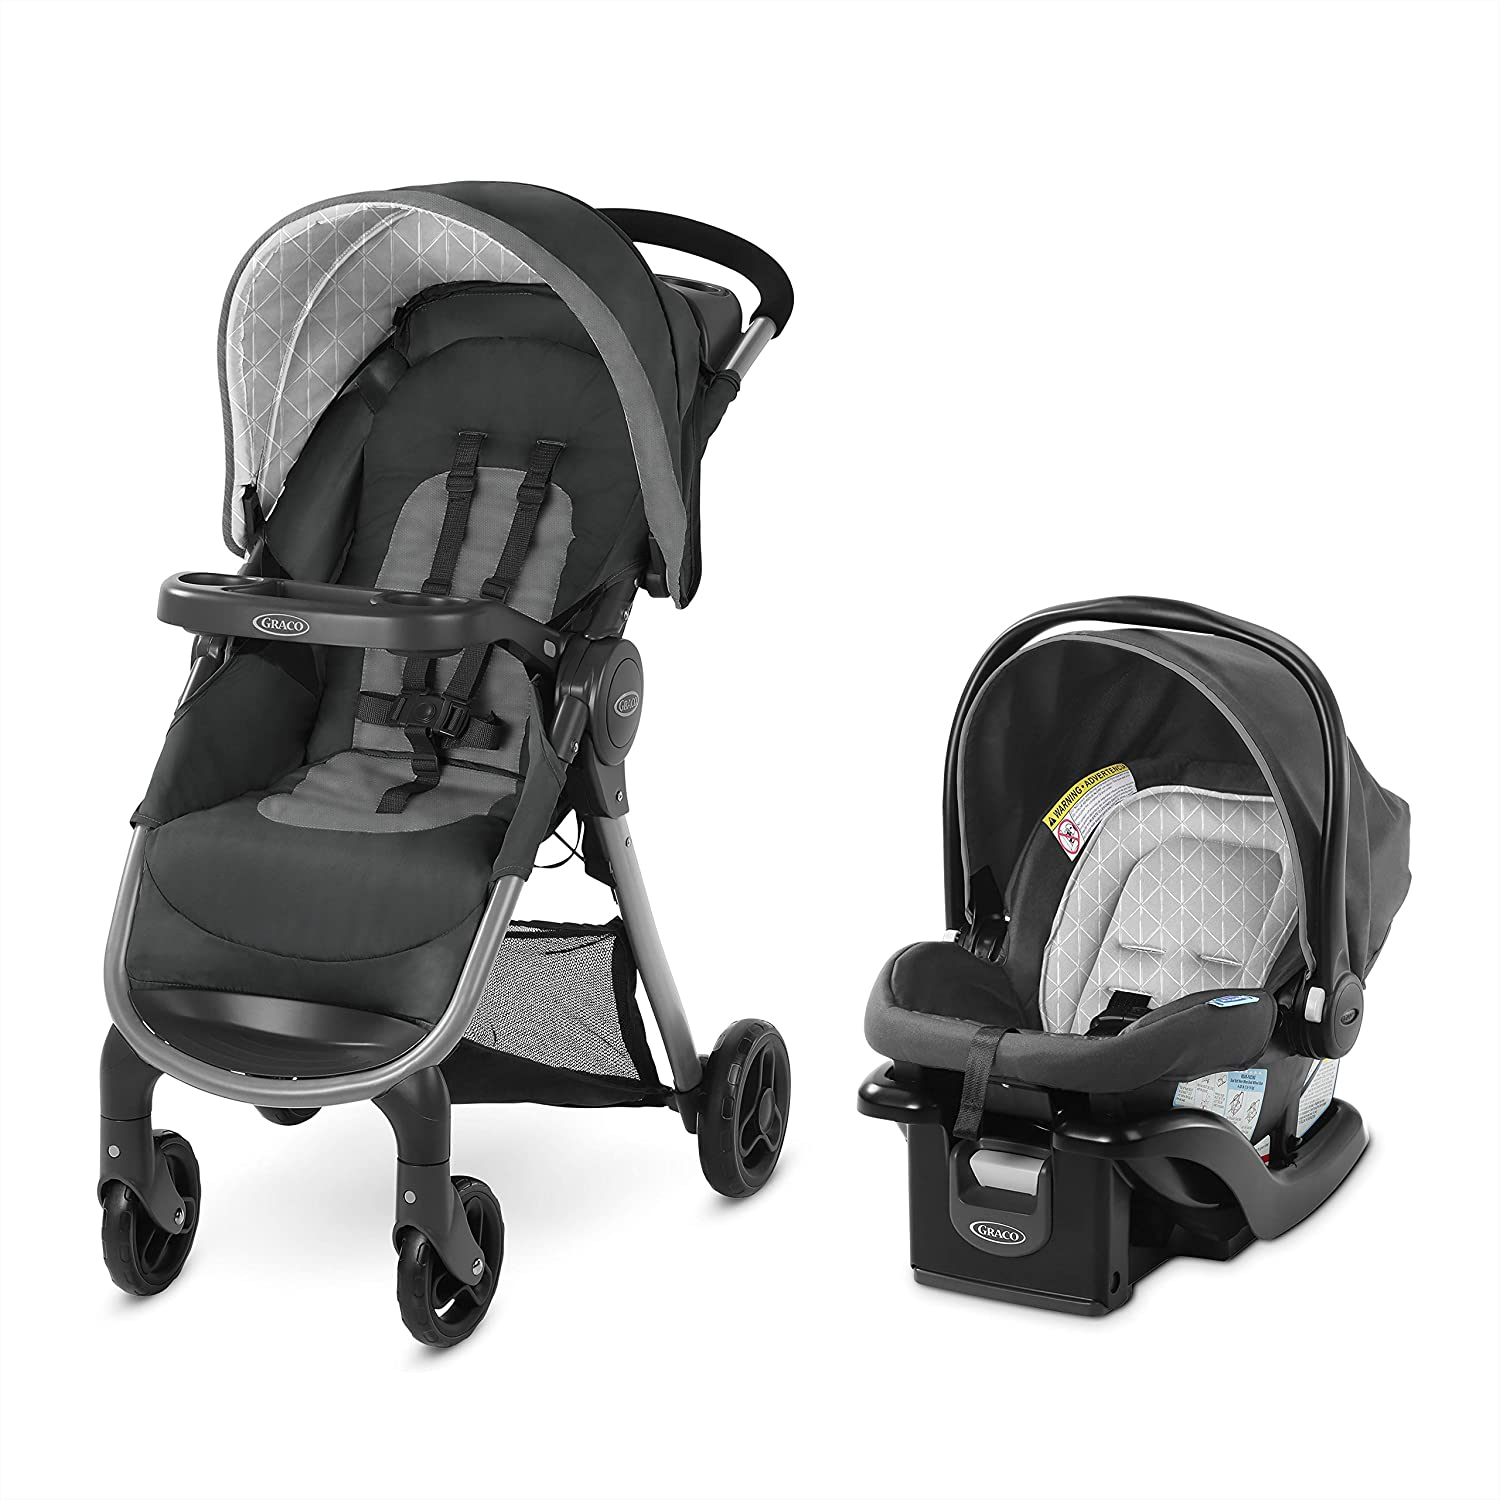 GRACO FastAction SE Travel System Includes Quick Folding Stroller and SnugRide 35 Lite Infant Car Seat, Derby